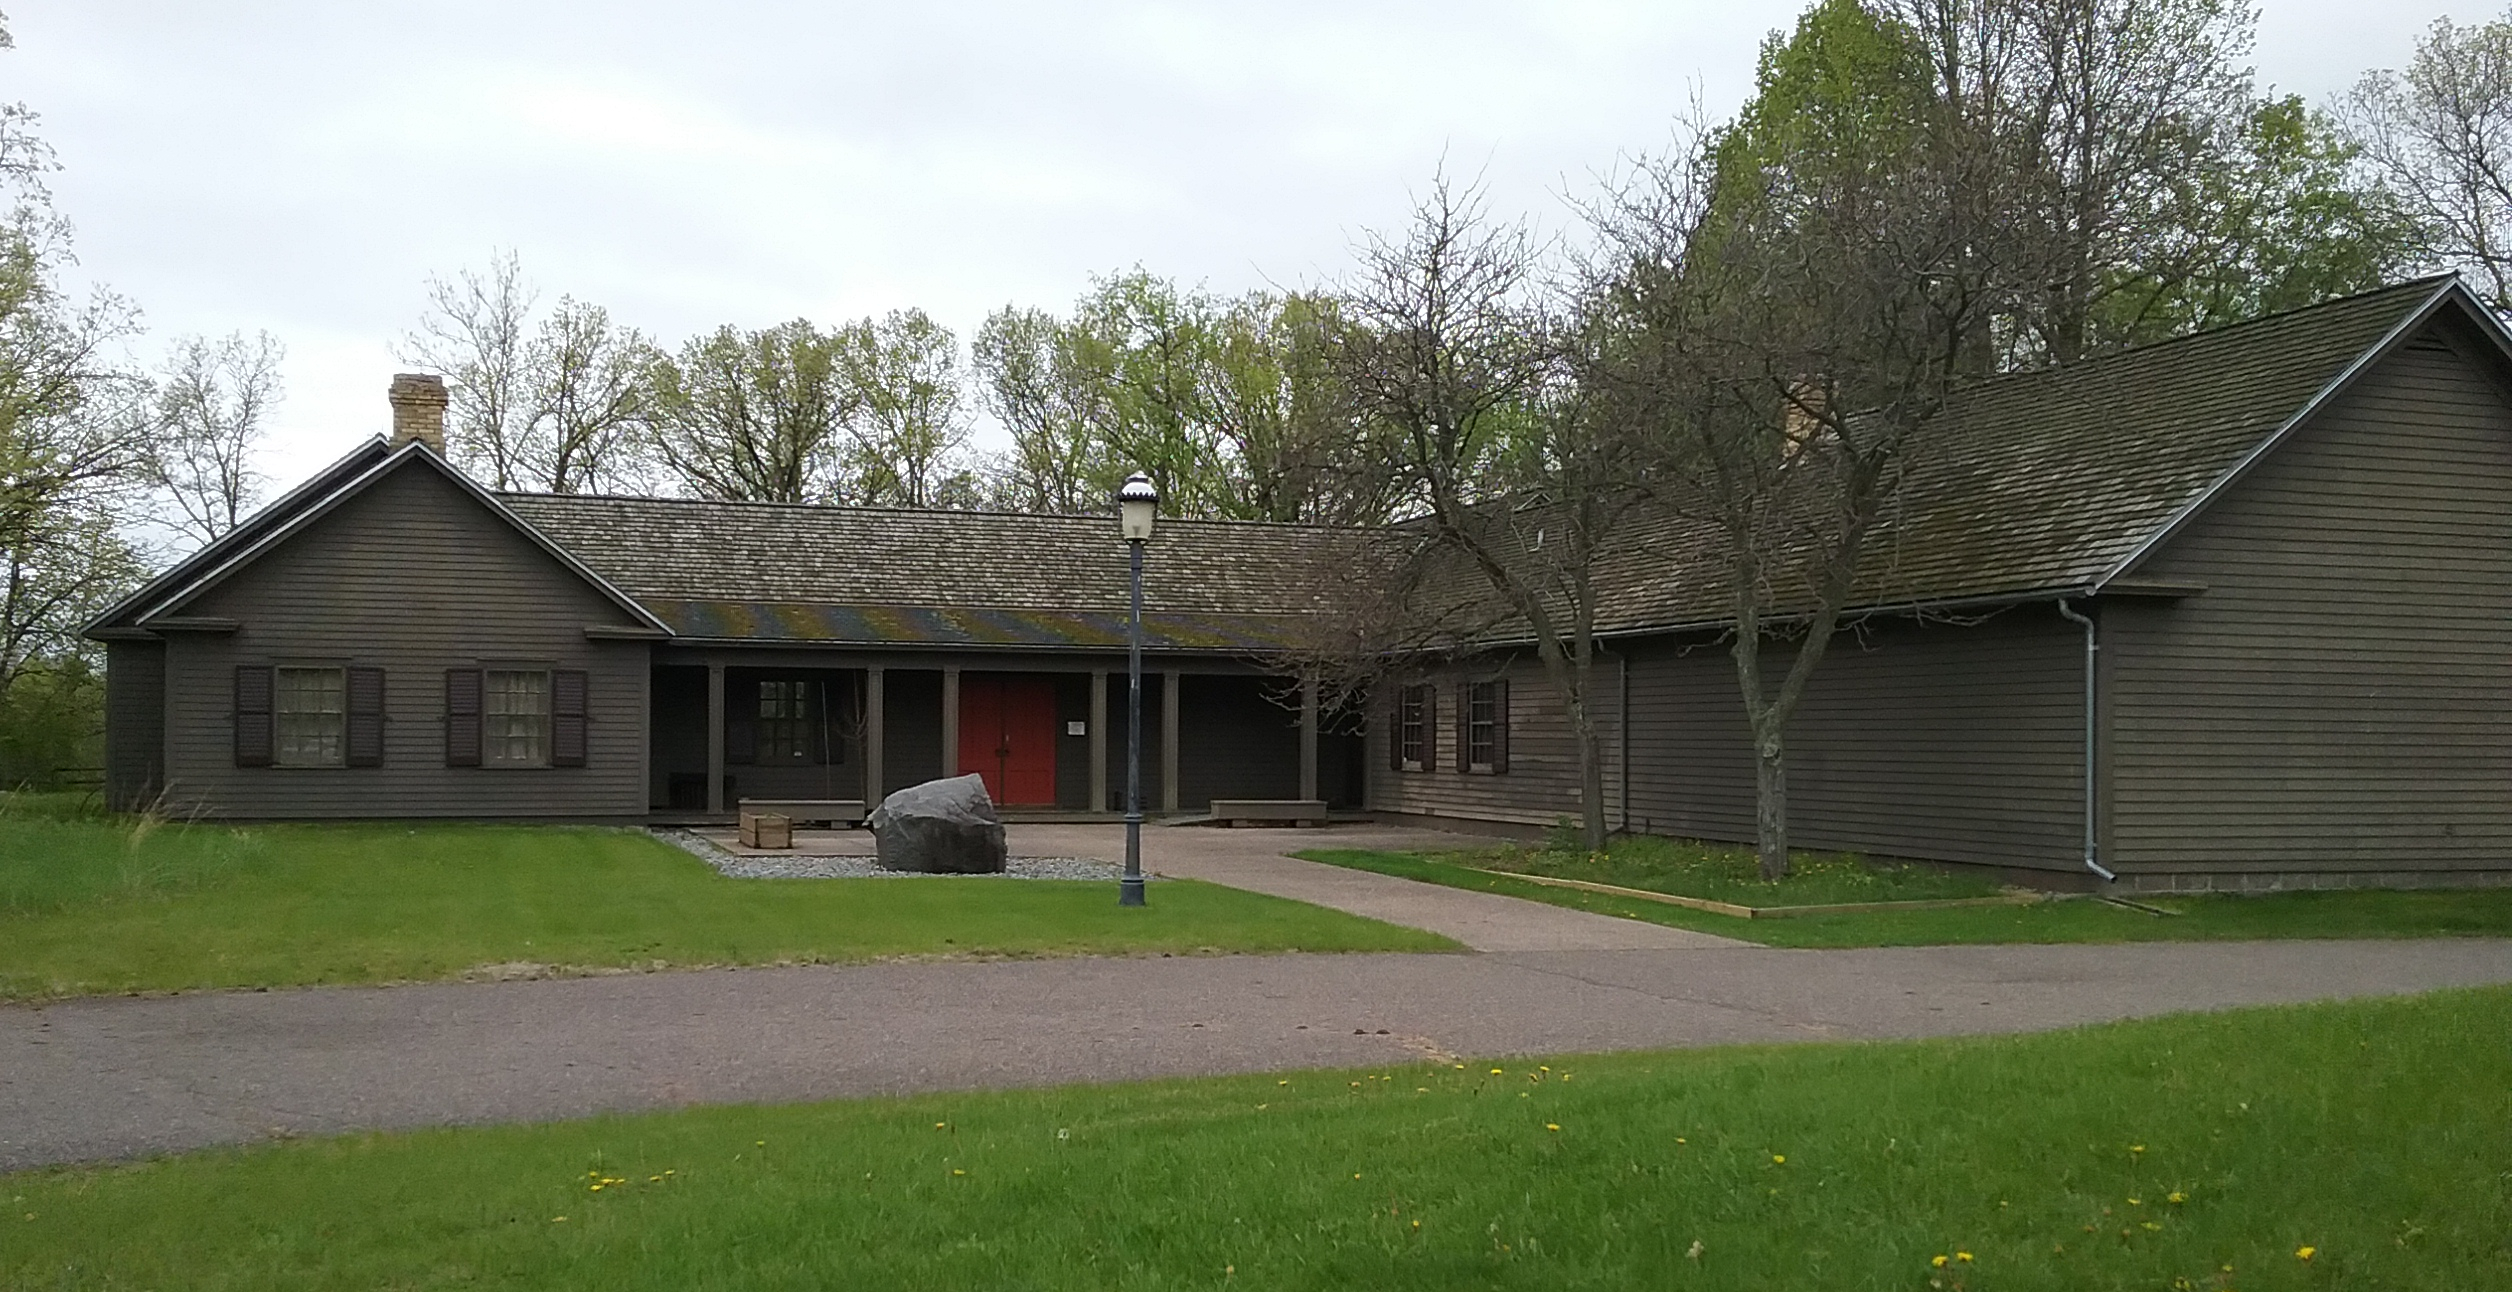 The Charles A. Weyerhaeuser Memorial Museum in Little Falls, MN. Home of the Morrison County Historical Society. 2019